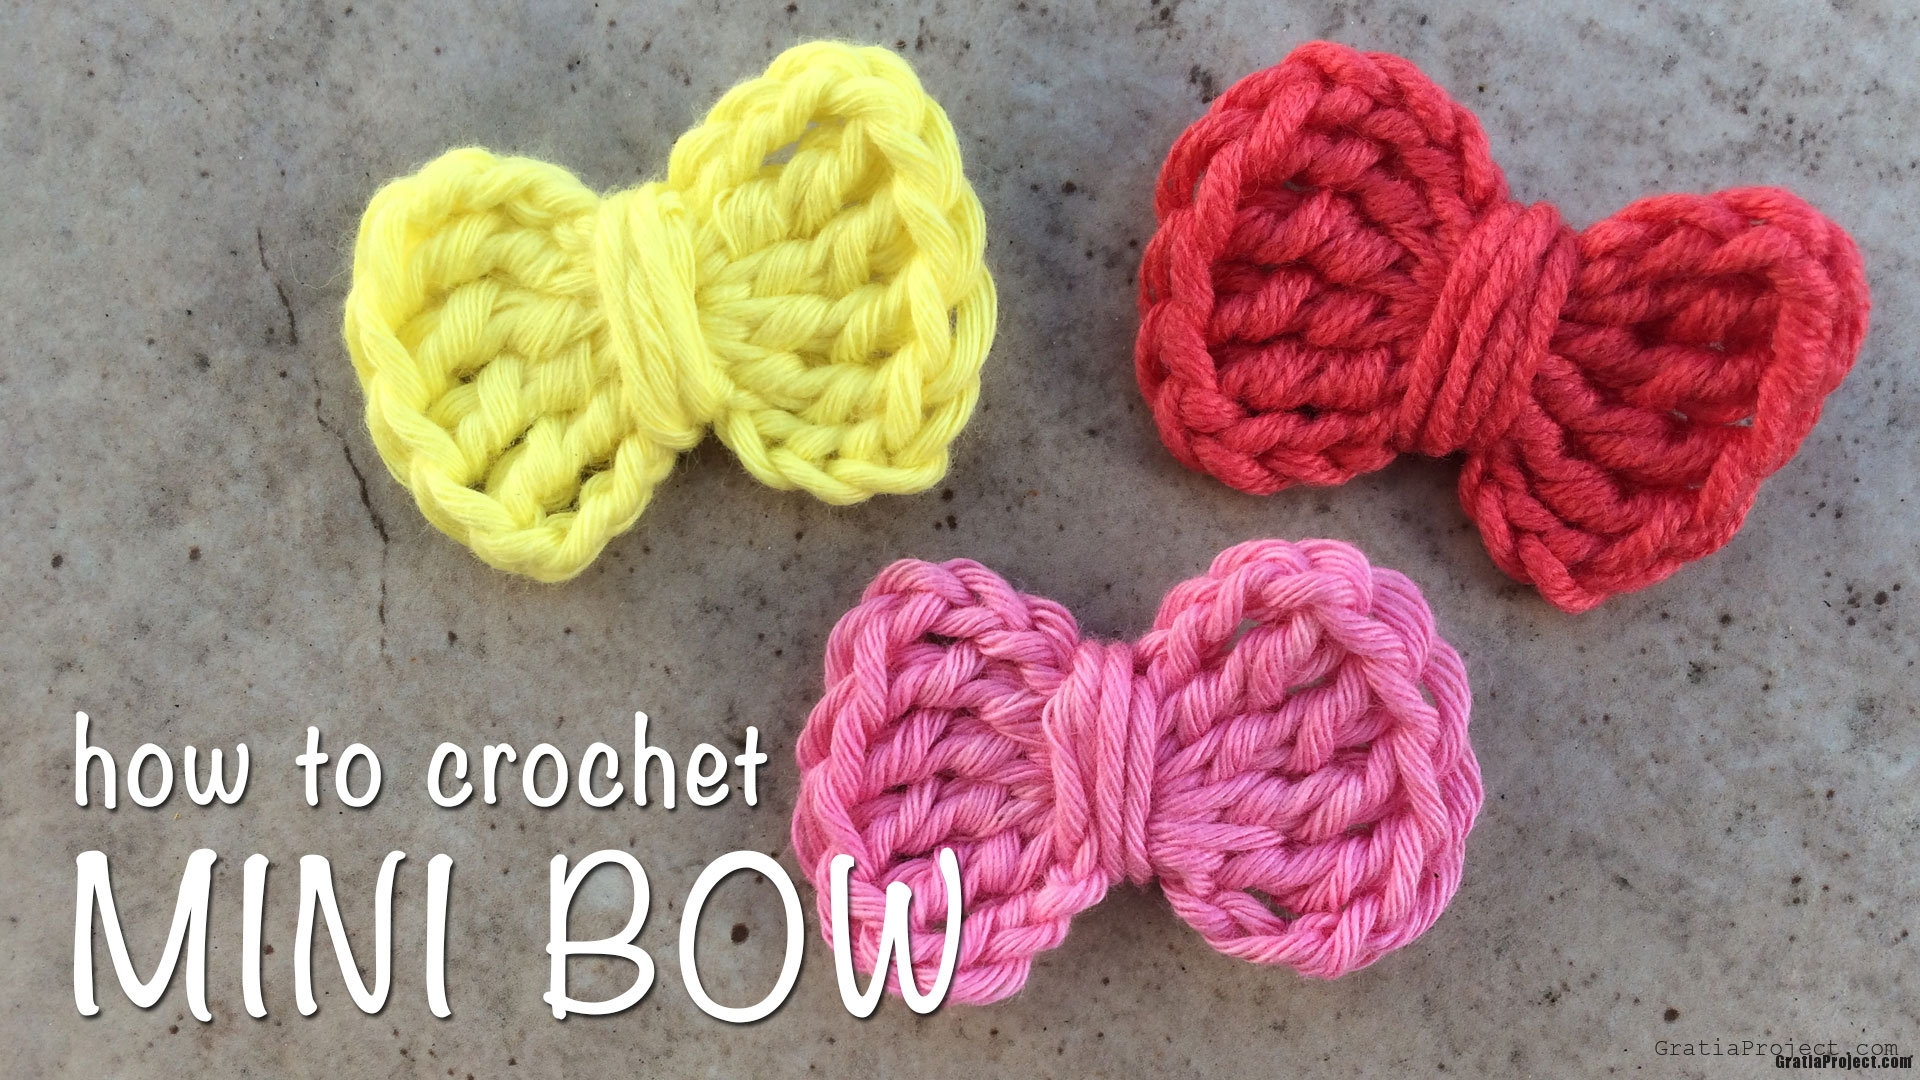 how-to-crochet-mini-bow